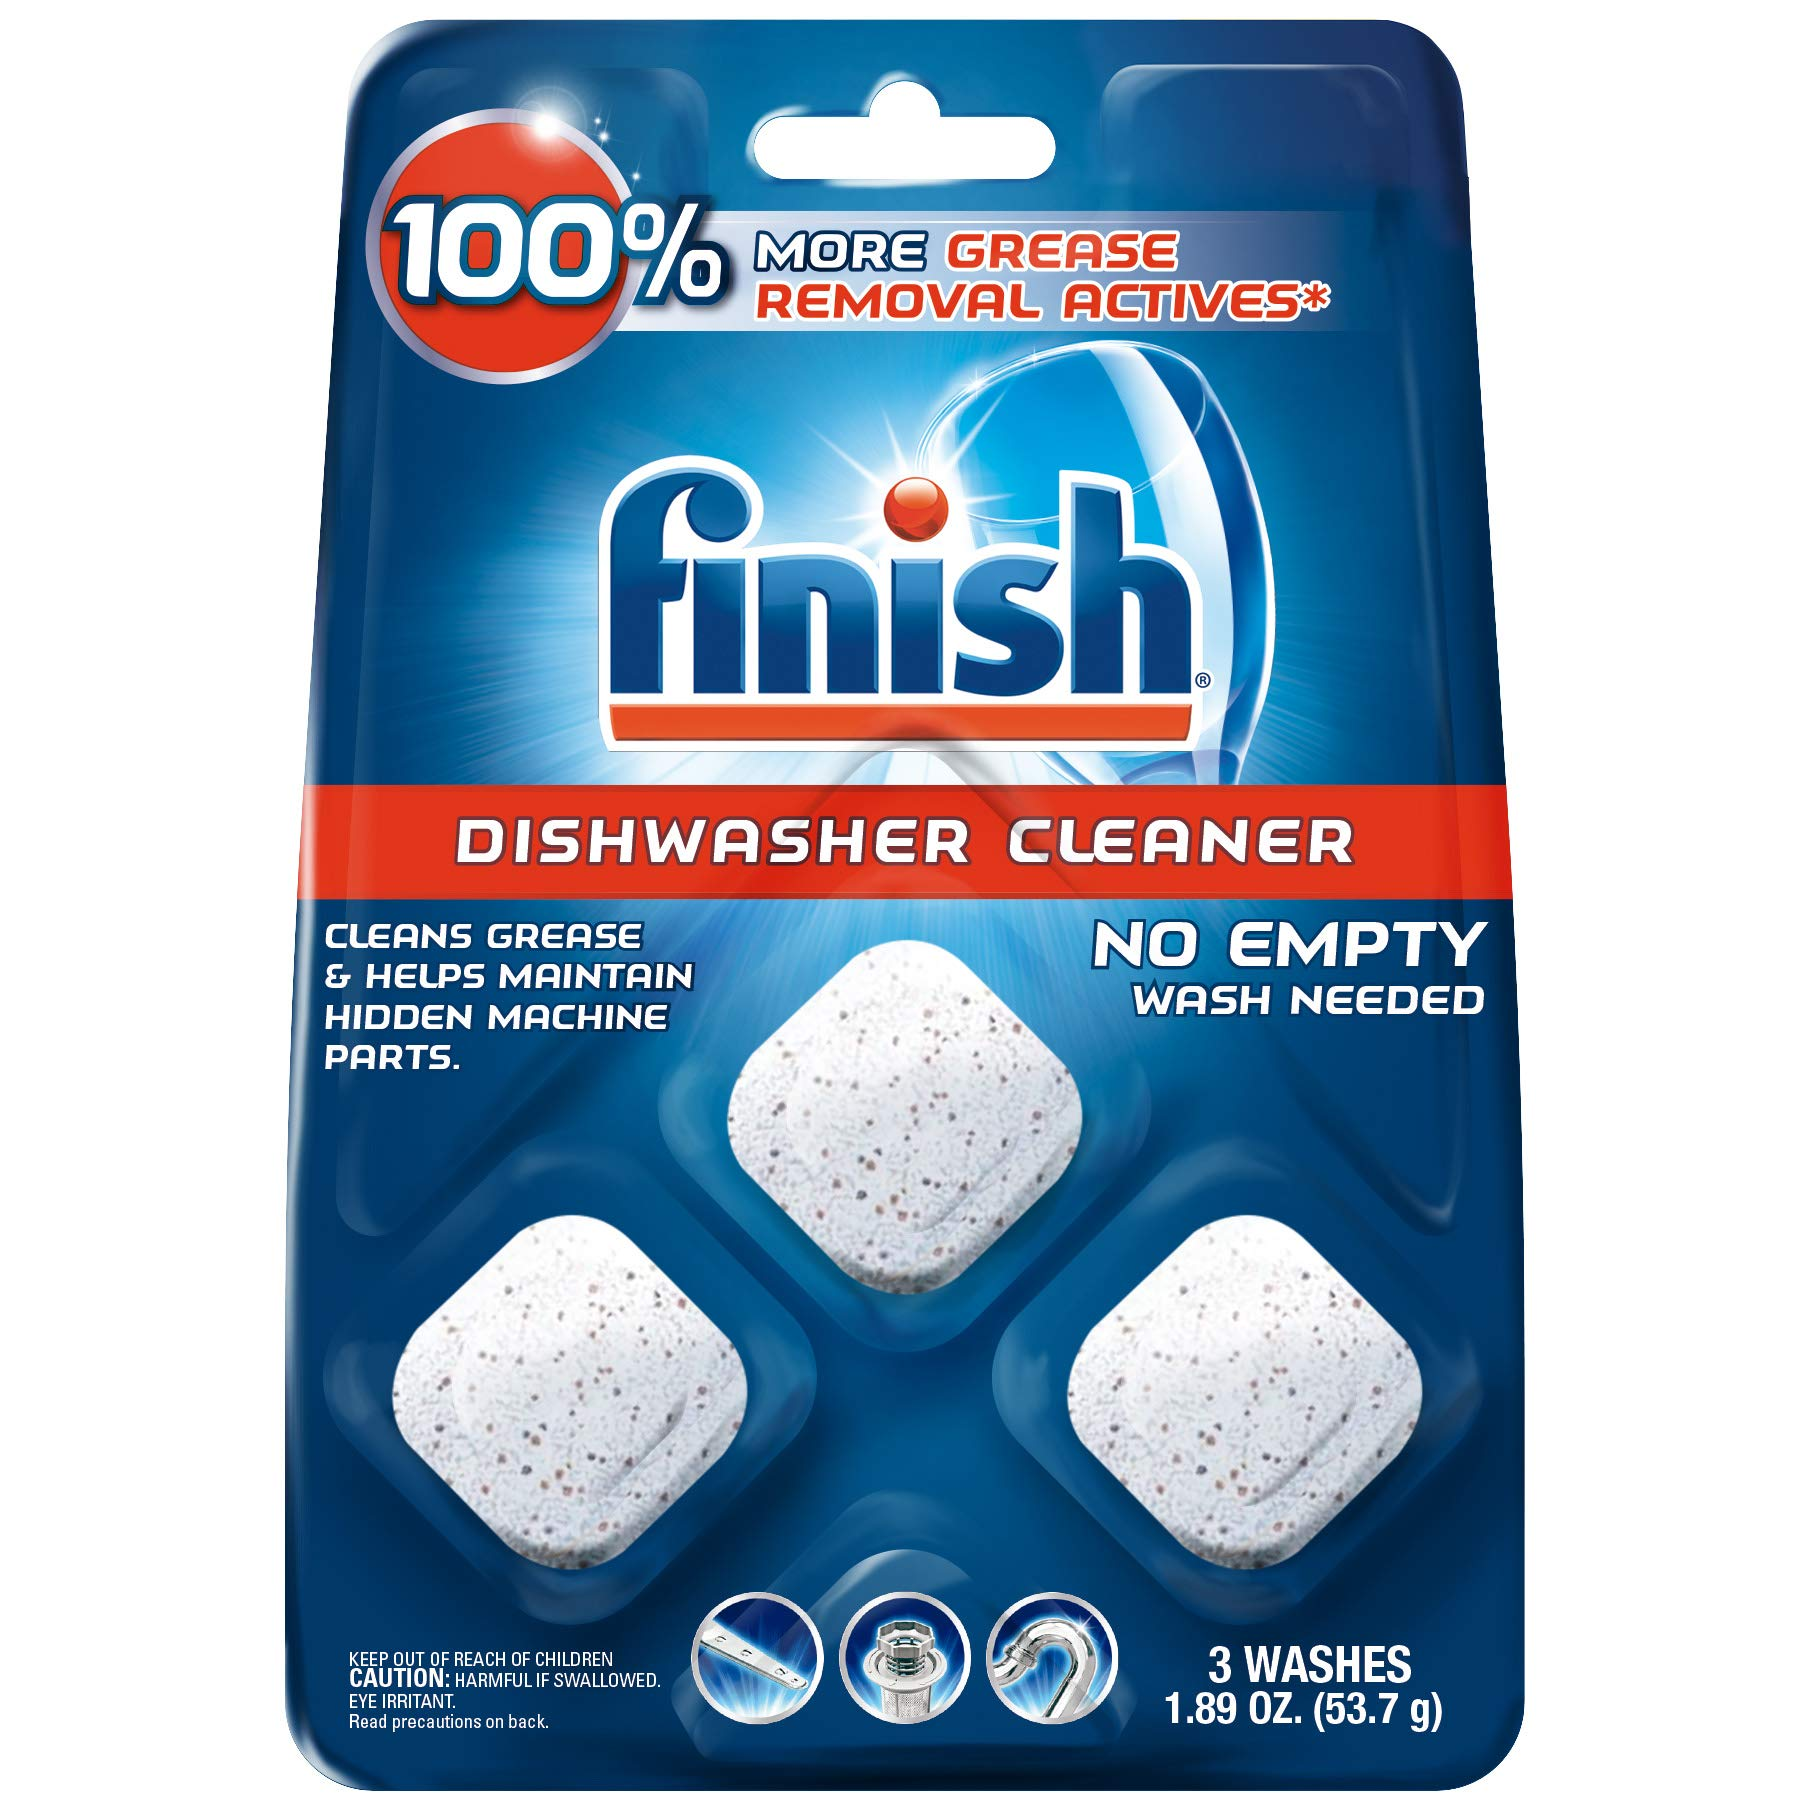 Finish In-Wash Dishwasher Cleaner: Clean Hidden Grease & Grime, 3 count - Pack of 4 by Finish